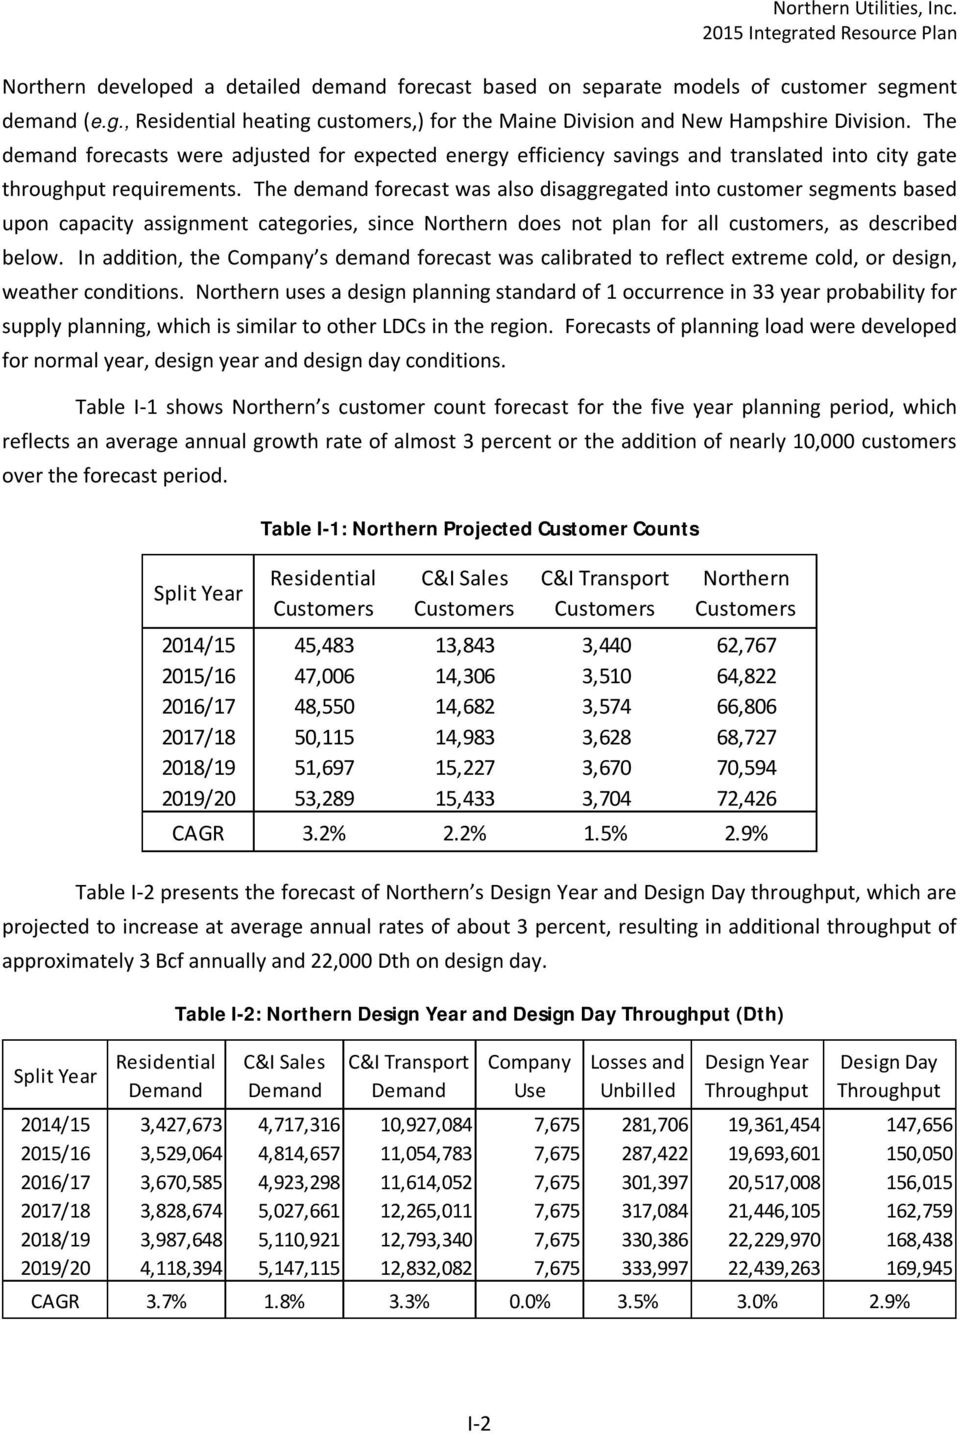 The demand forecast was also disaggregated into customer segments based upon capacity assignment categories, since Northern does not plan for all customers, as described below.